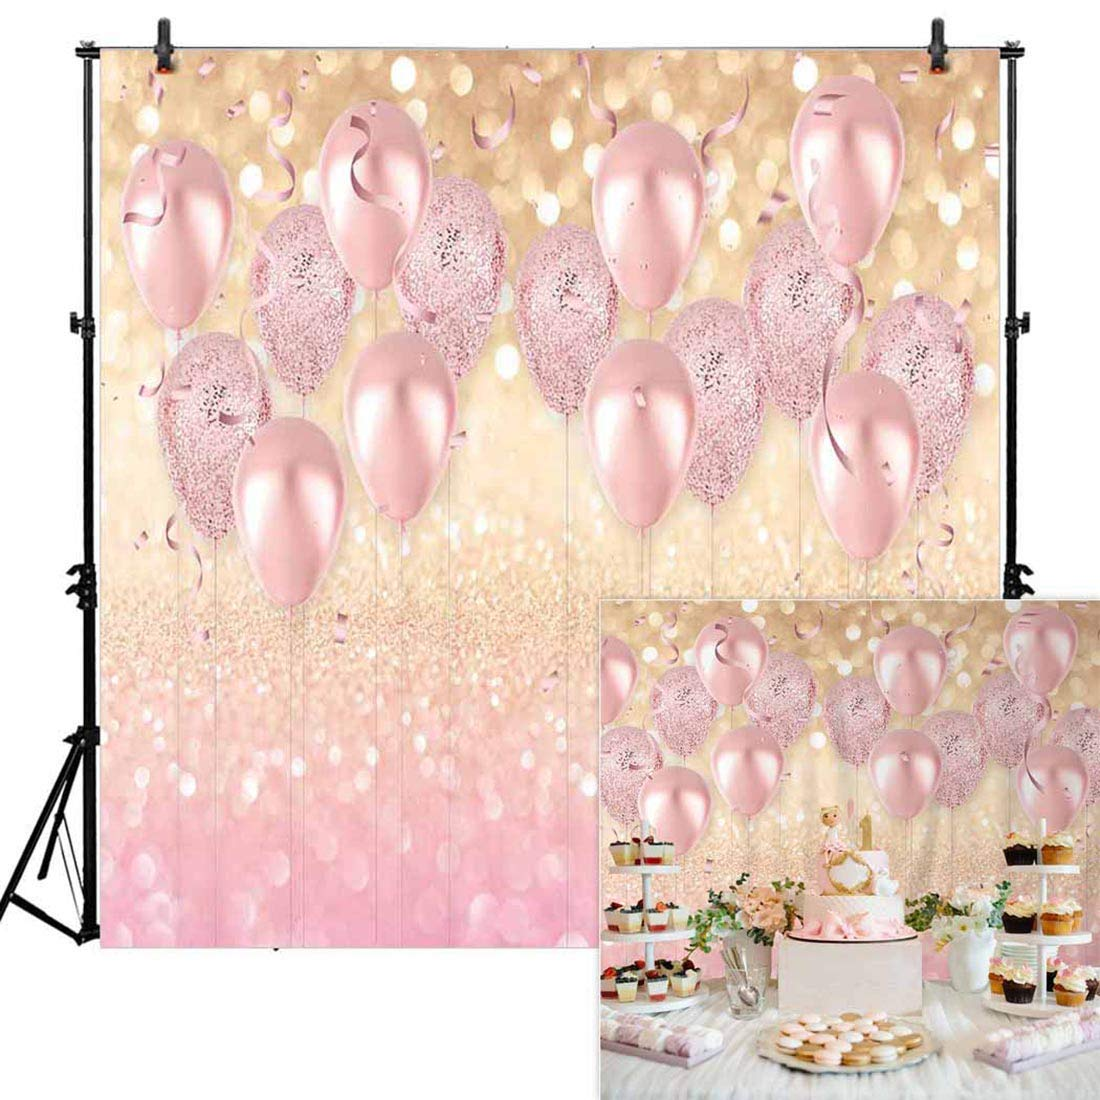 Allenjoy 8x8ft Durable Soft Fabric Rose Gold Party Decorations Pink Balloon Glittter Bokeh Photo Backdrop Birthday Baby Bridal Shower Bachelorette Party Supplies Photography Background Studio Props